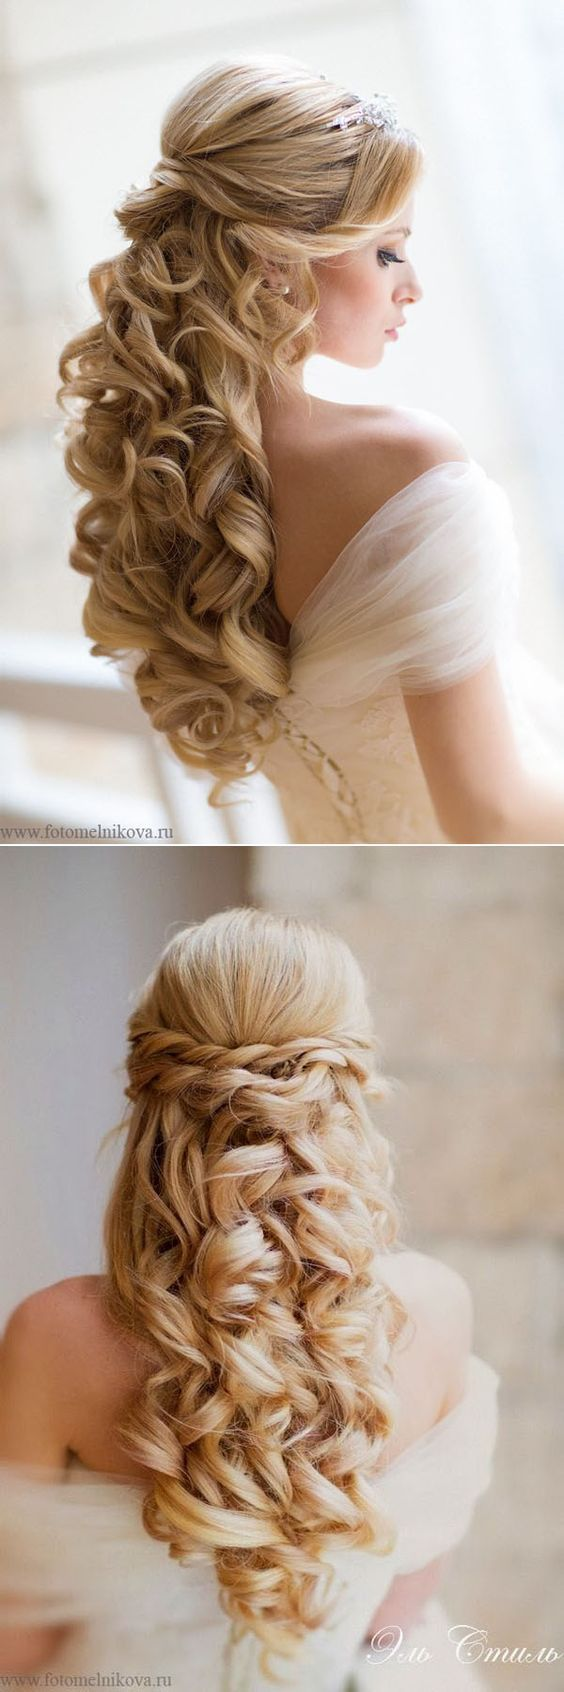 best cabelos images on pinterest bridal hairstyles hair ideas